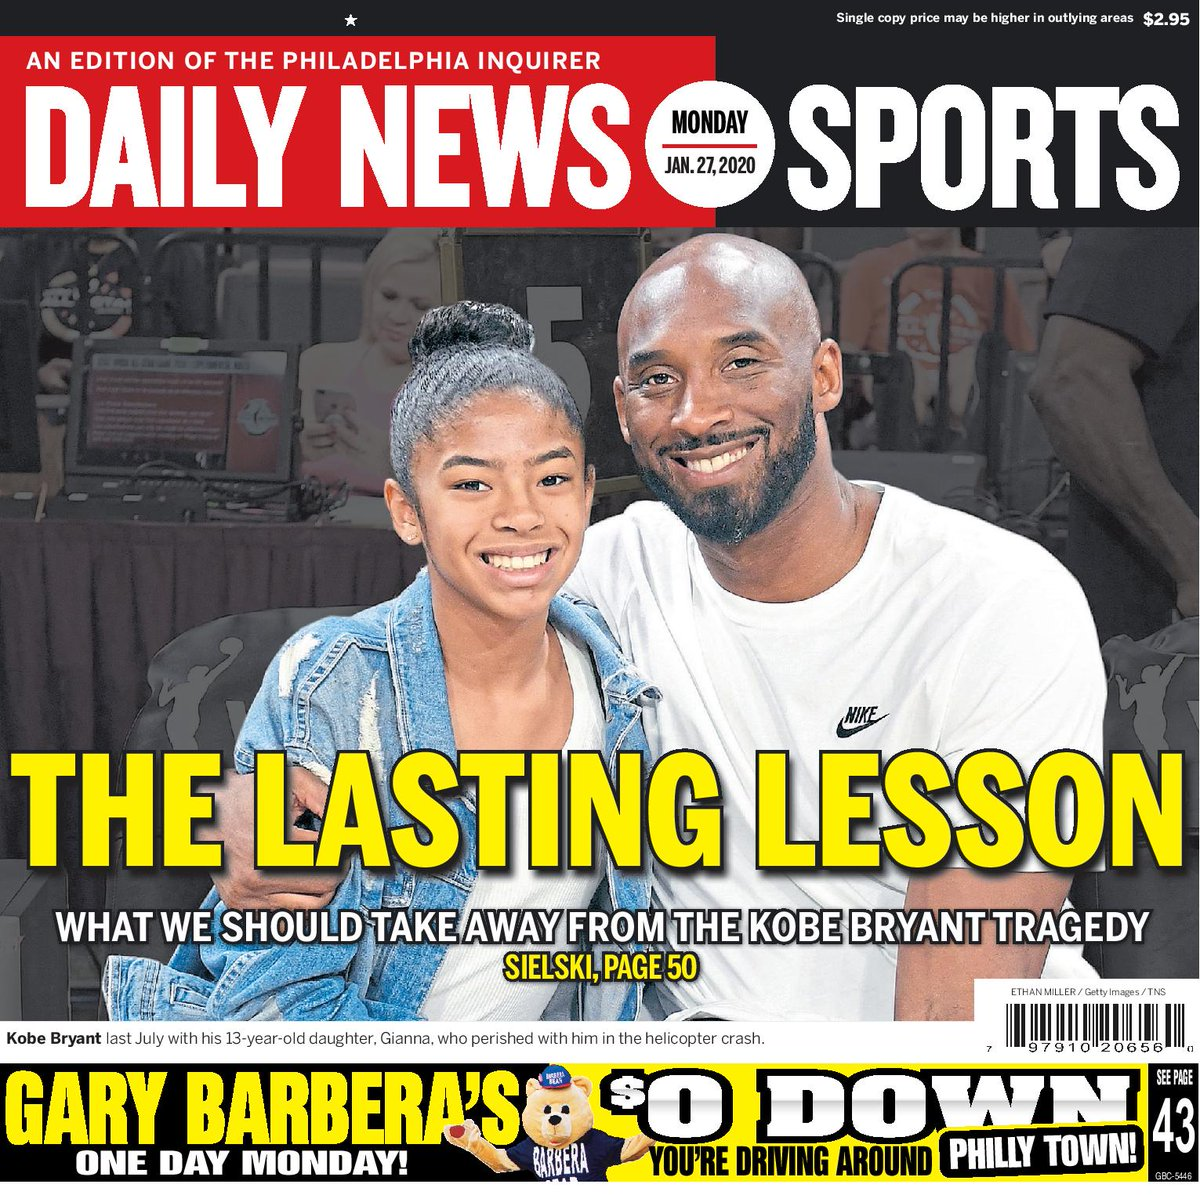 One year ago today, the world lost #Kobe Bryant. A look at some of the coverage found in the #Philadelphia Daily News (@PhillyDailyNews) from that fateful day. #AlwaysPhilly  #Mamba   Subscribe: https://t.co/jkTC1m82hc https://t.co/BbPa83RxNe